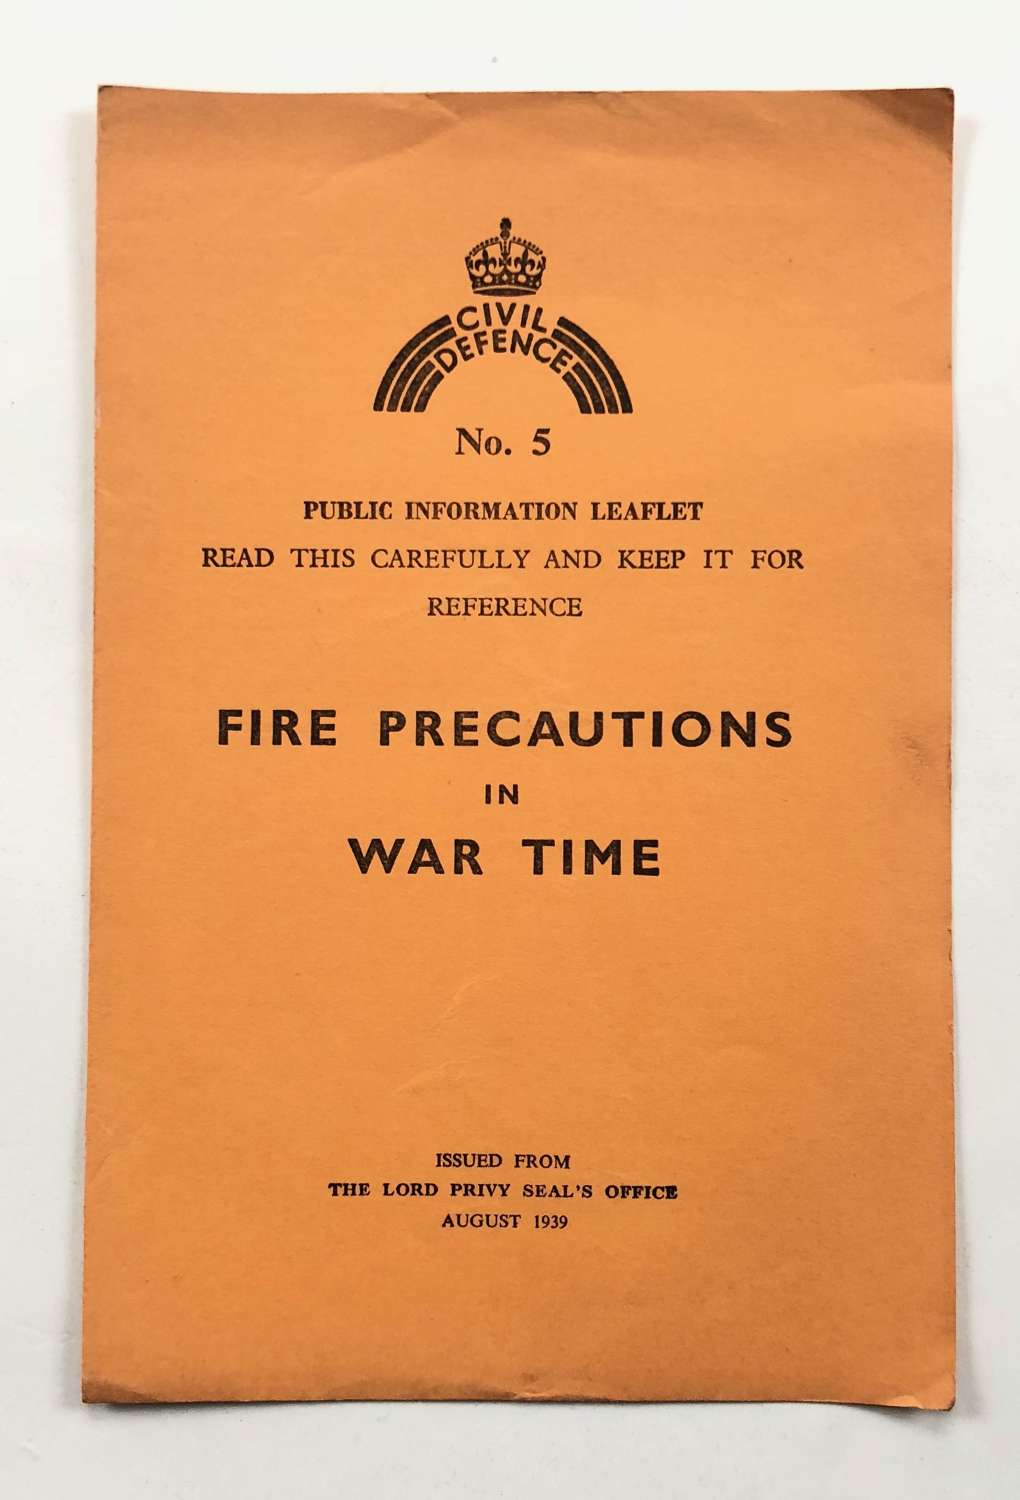 WW2 Home Front Civil Defence Fire Precautions in War Time.